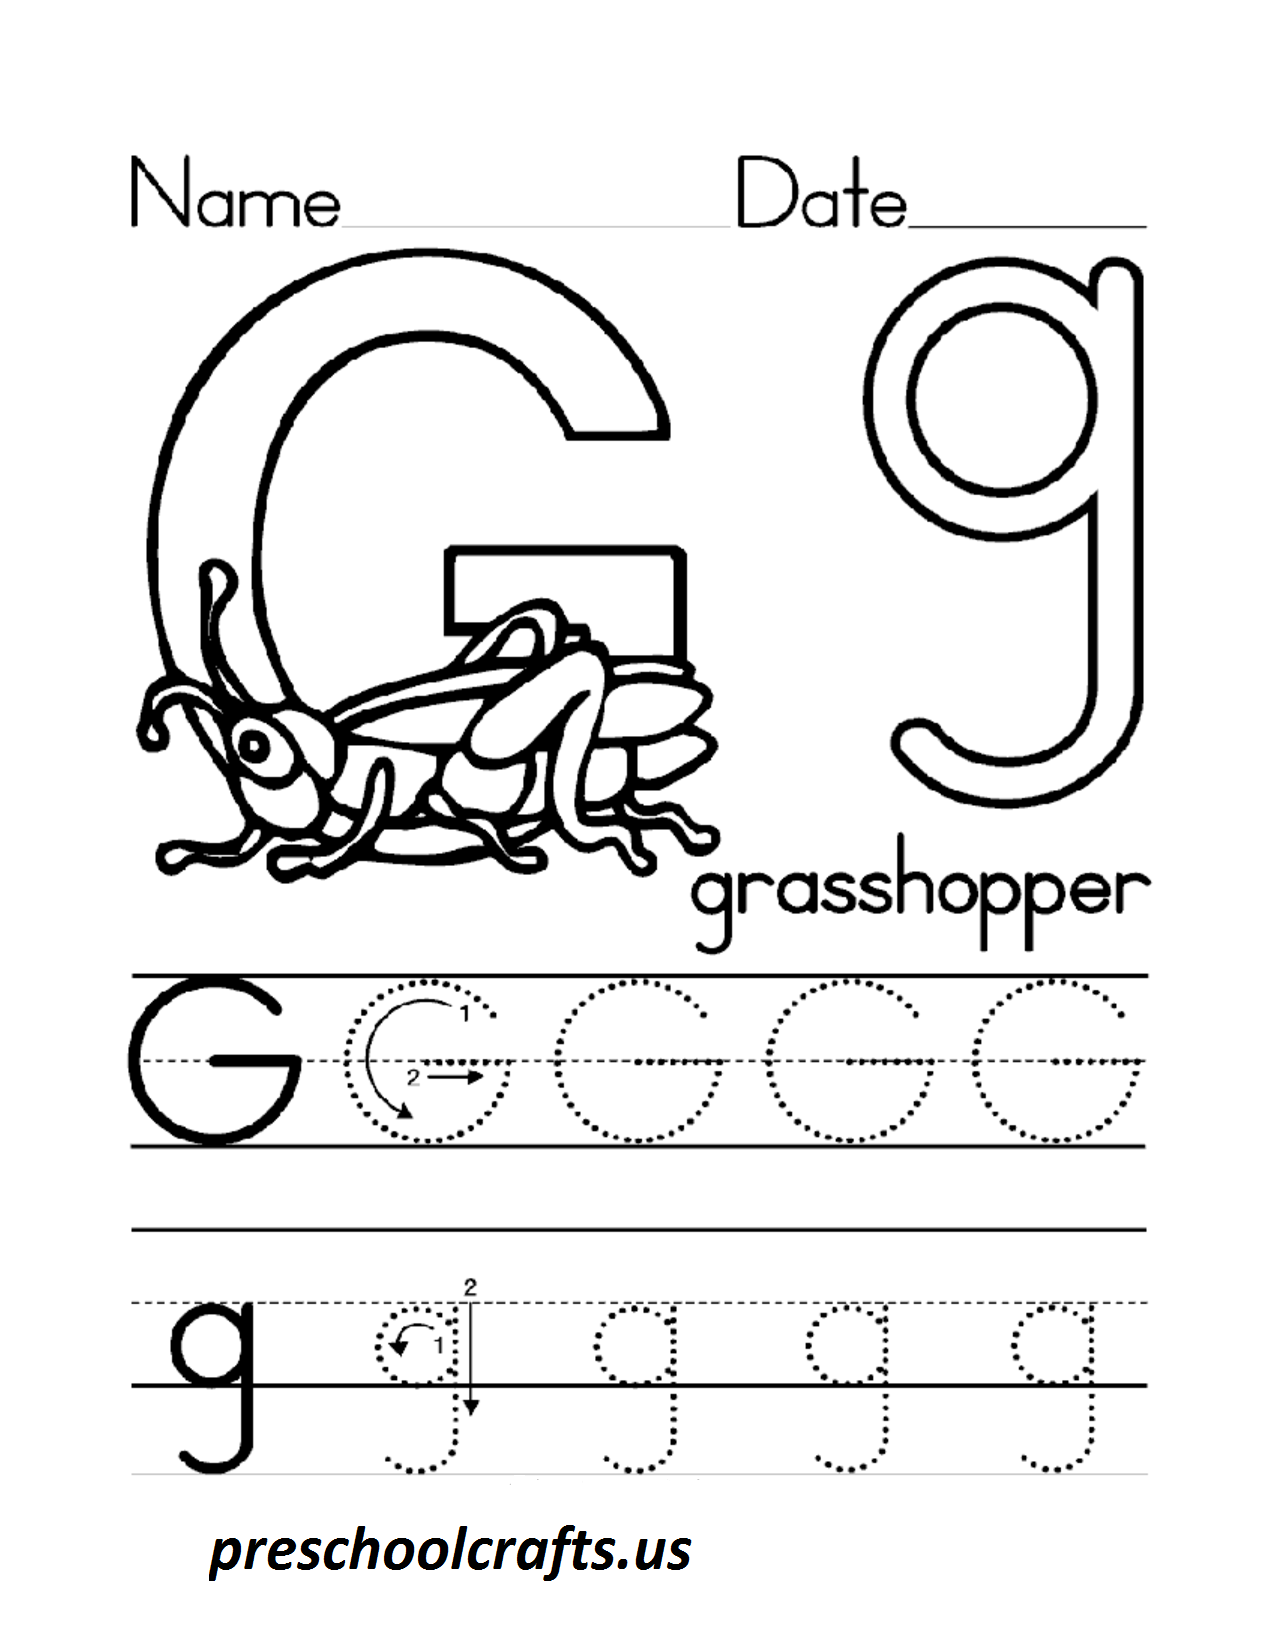 Free Worksheet Letter G Worksheets For Kindergarten pre kindergarten worksheets abitlikethis letter g for preschool crafts